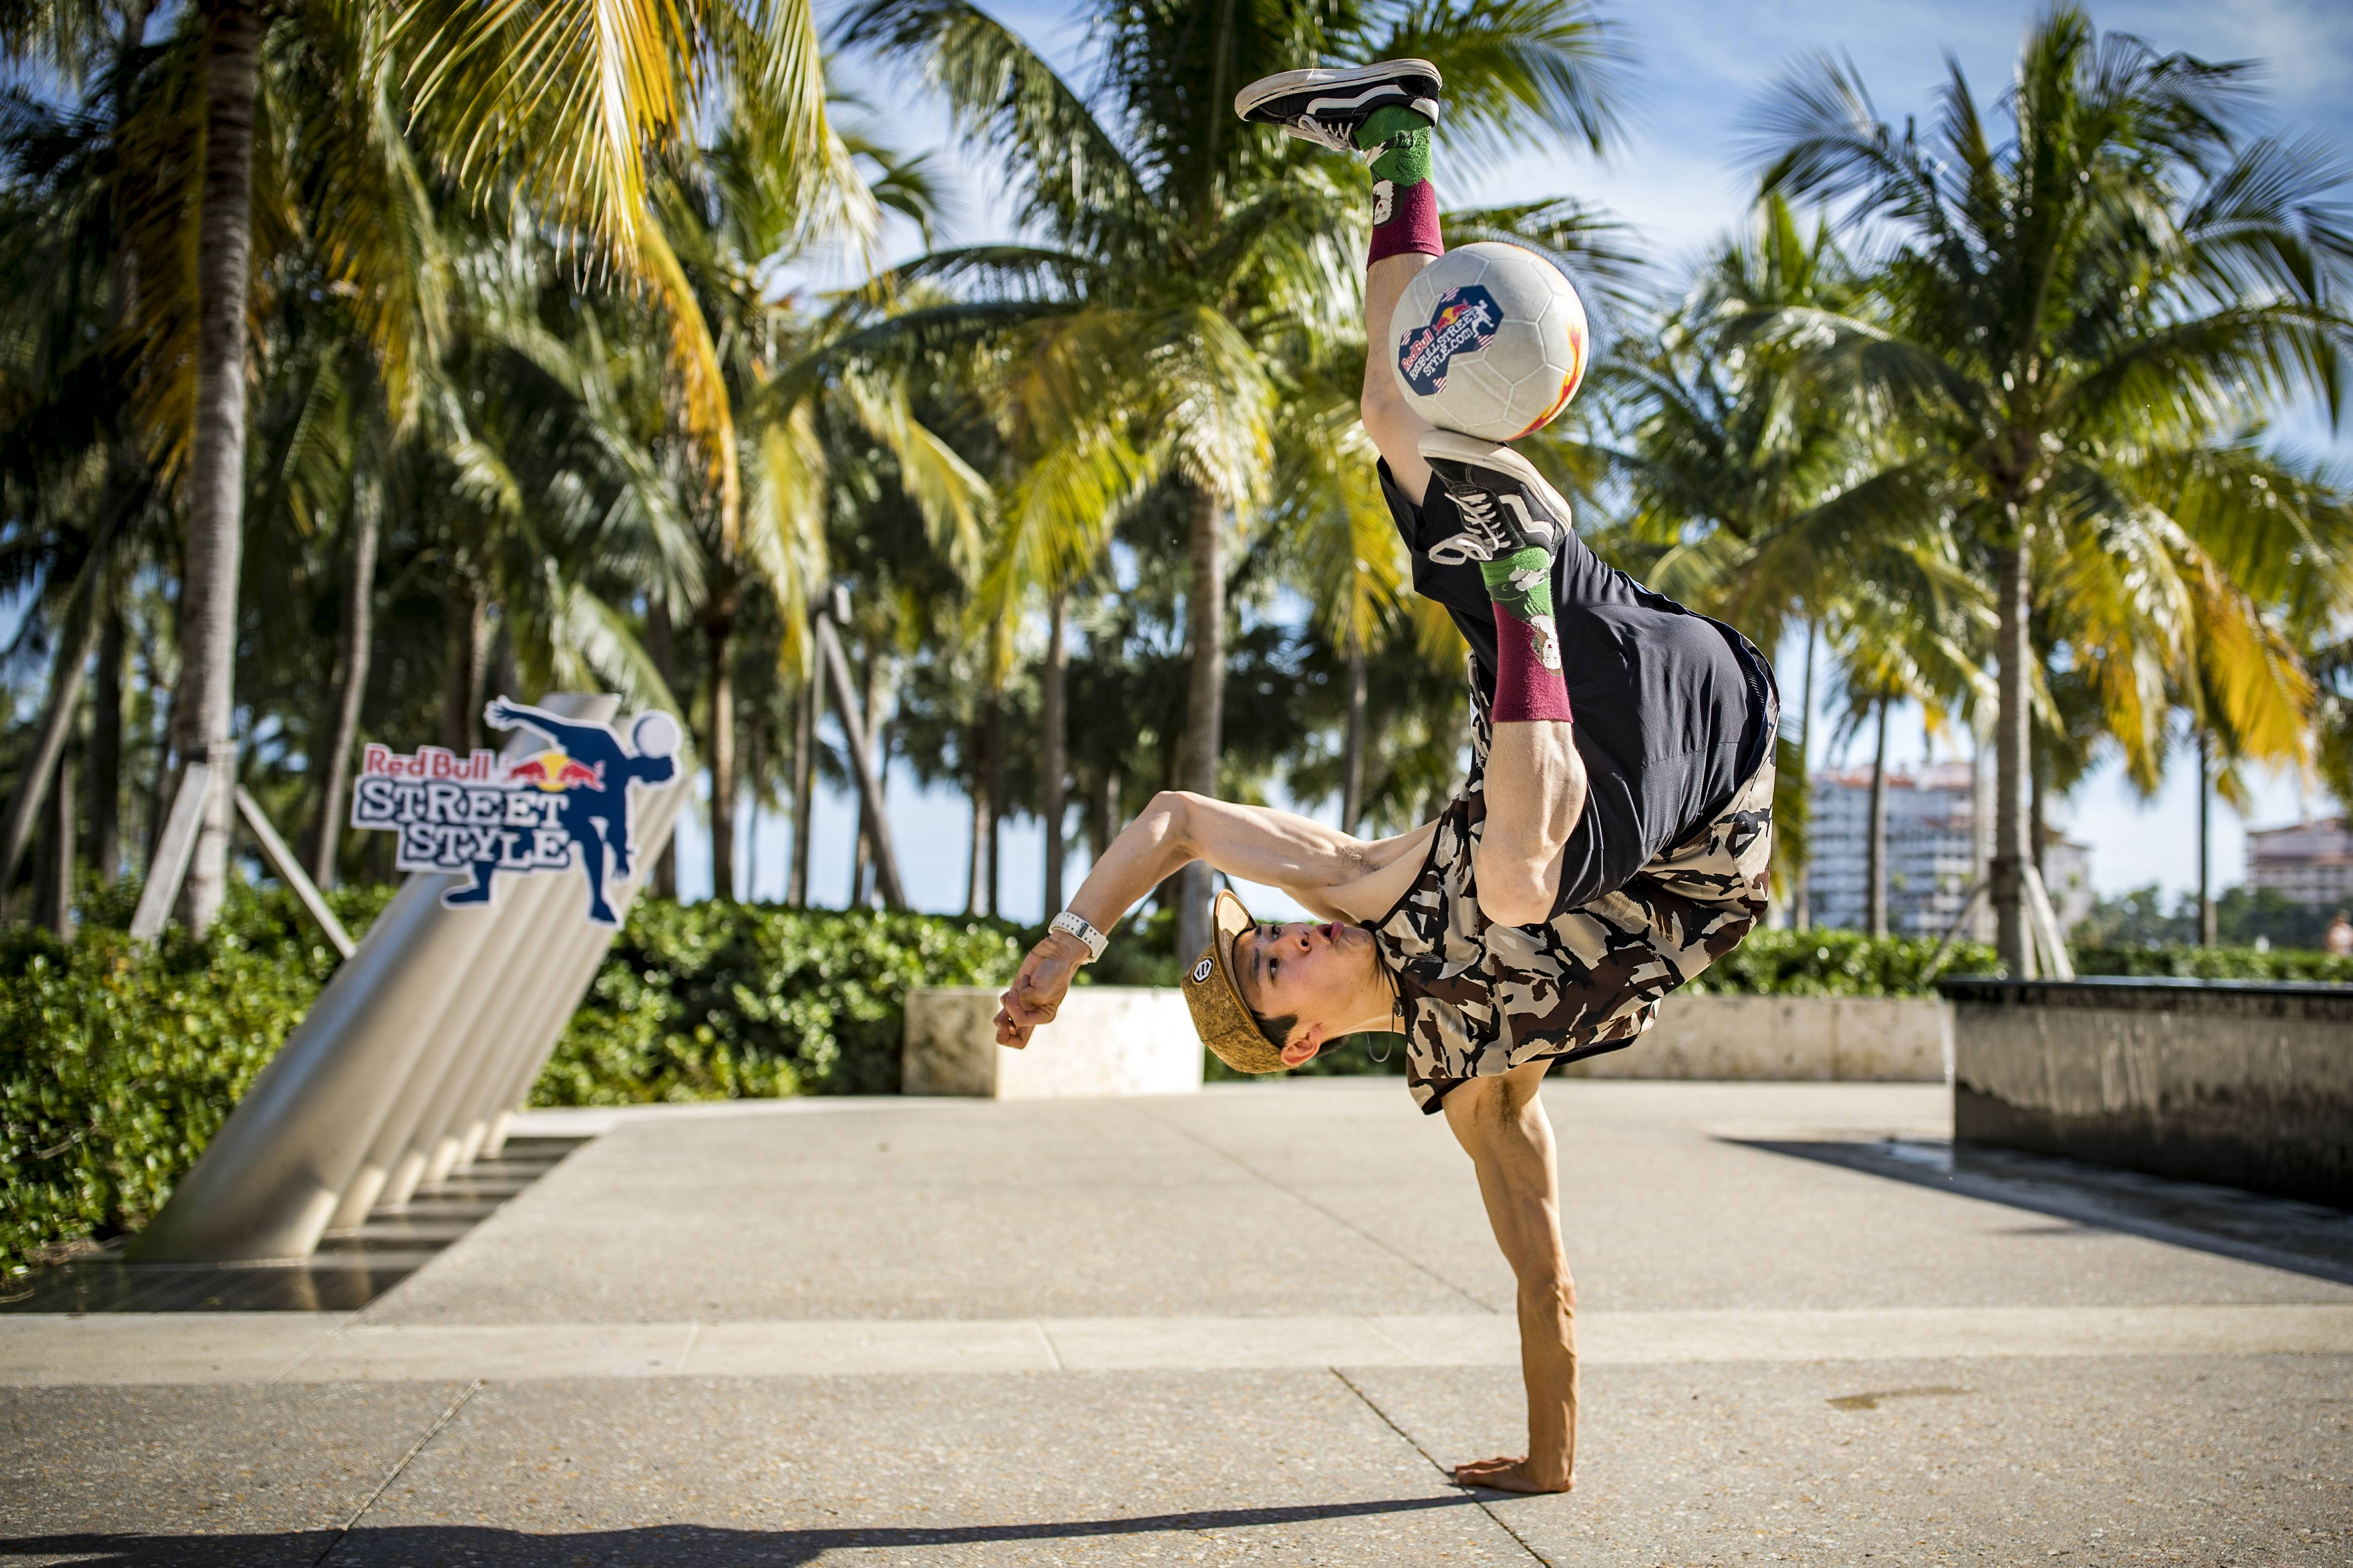 Qualifiers complete for Red Bull Street Style World Final 2019